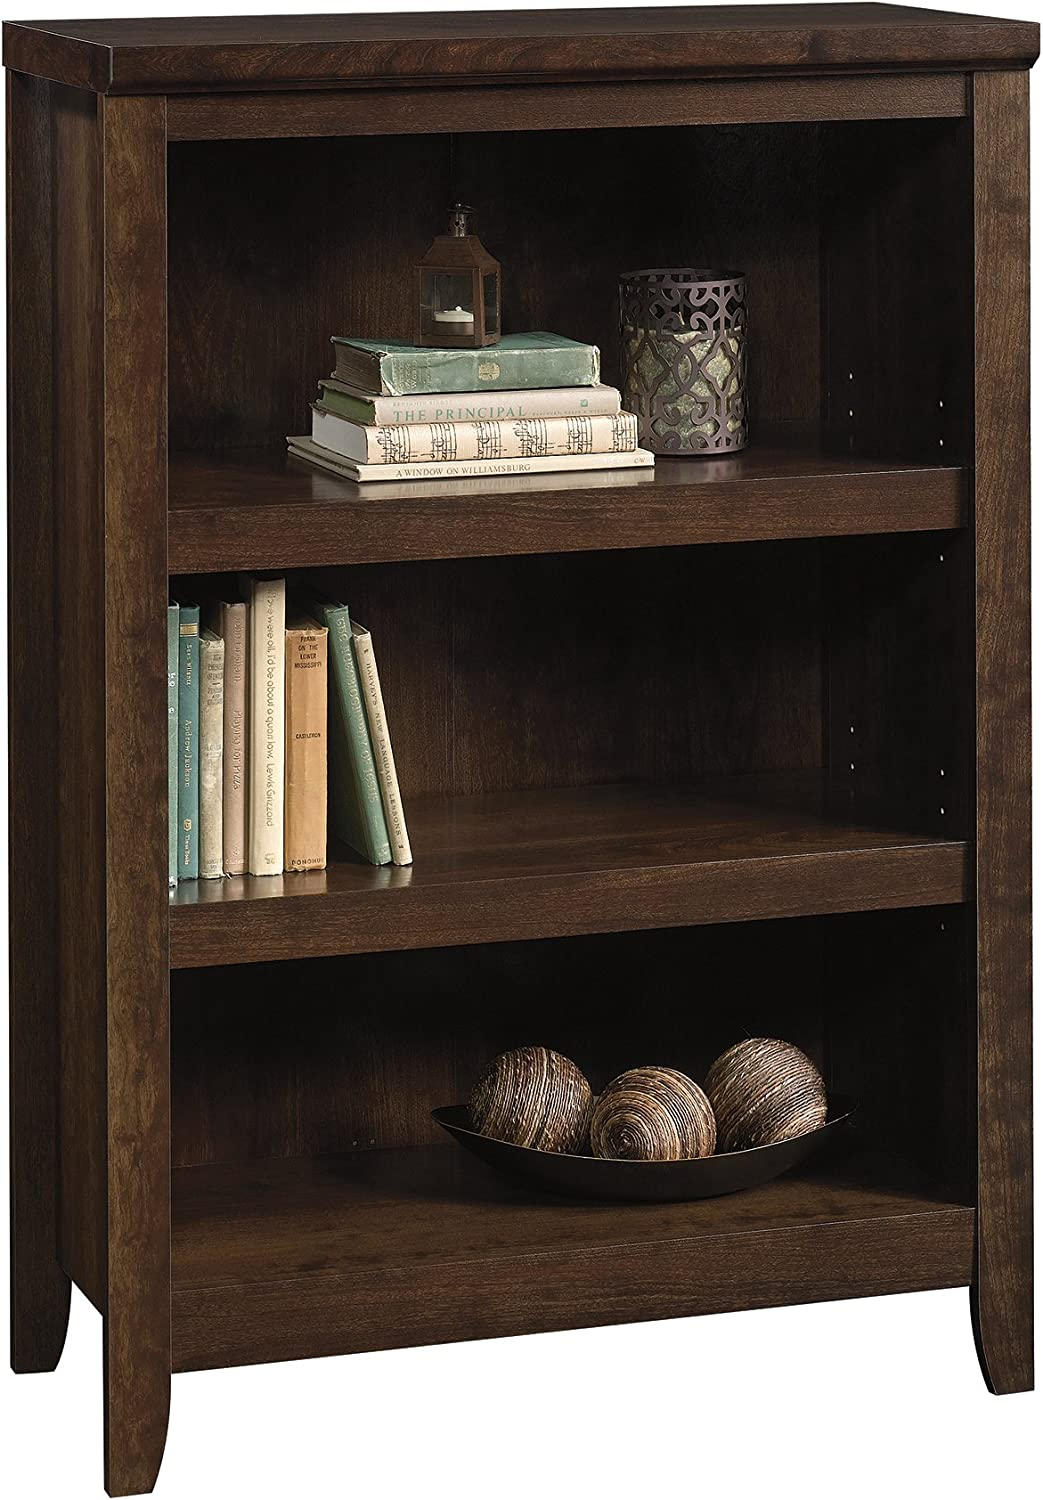 Better Homes & Gardens Parker 3 Shelf Classic Bookcase Estate Toffee Finish New